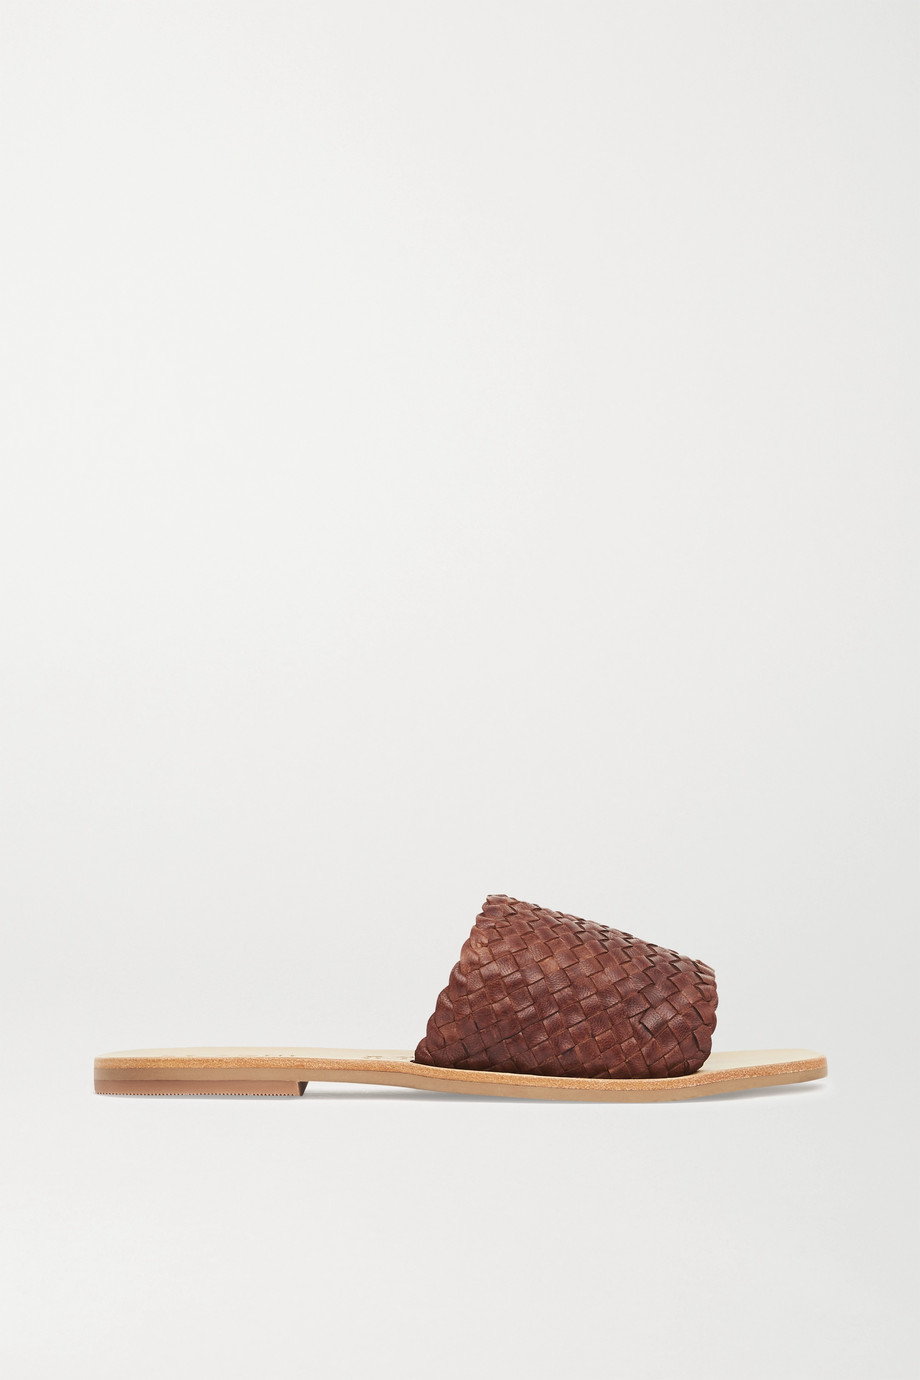 ST. AGNI + NET SUSTAIN Alice woven leather slides